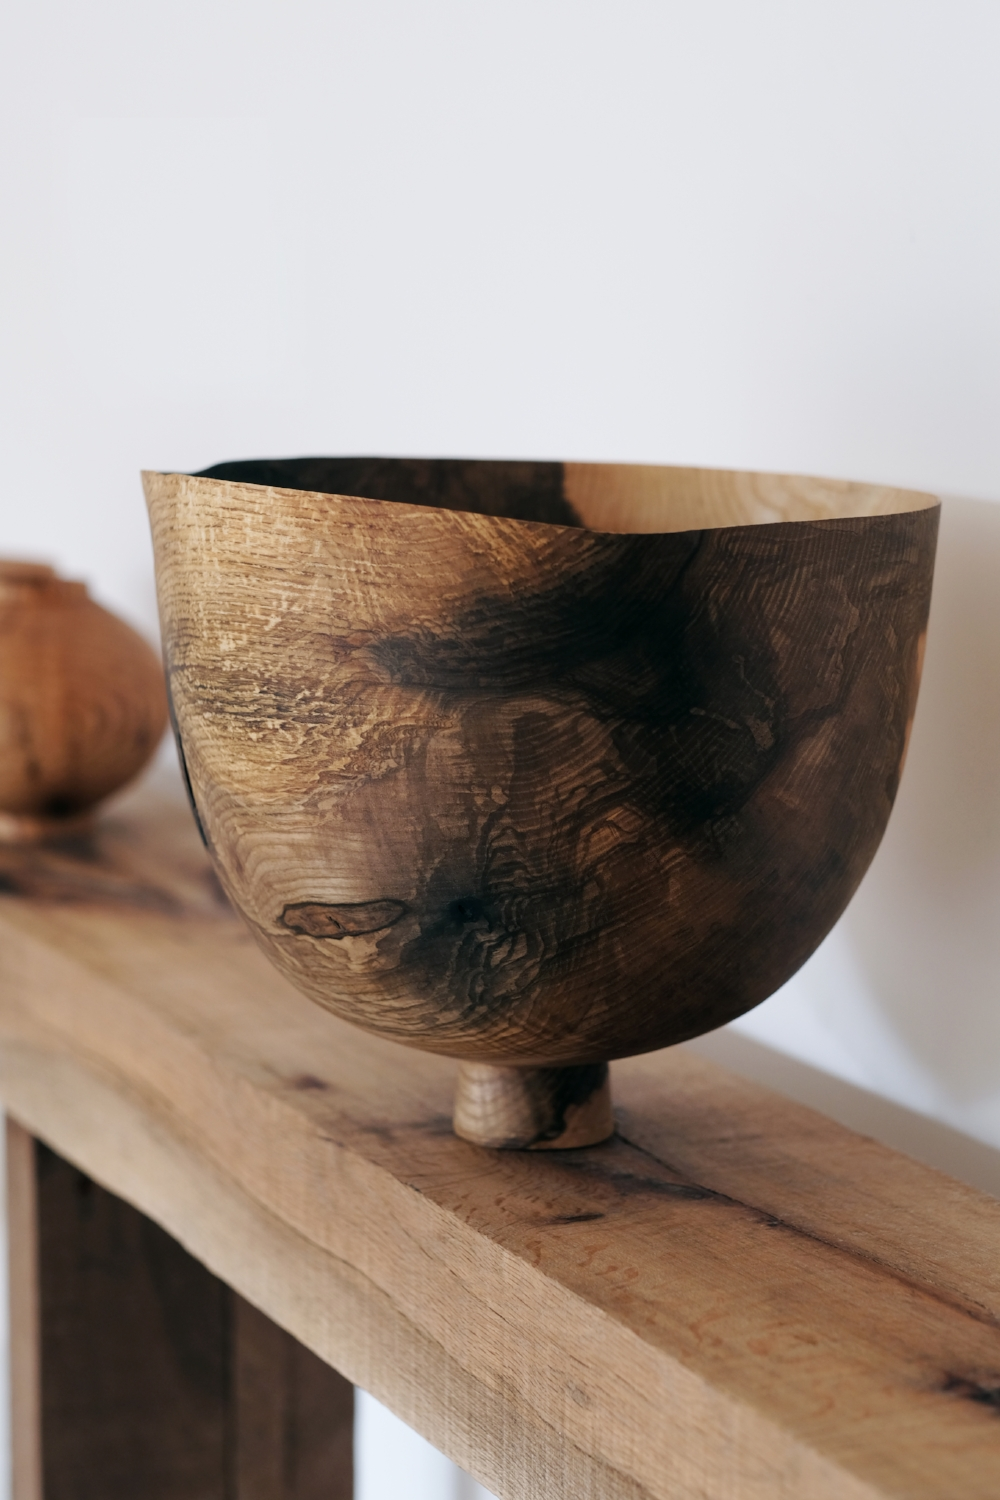 Offering Bowl  | olive ash wood | 2018   Installation View, Realising Landscape, The Space, Caro, Bruton